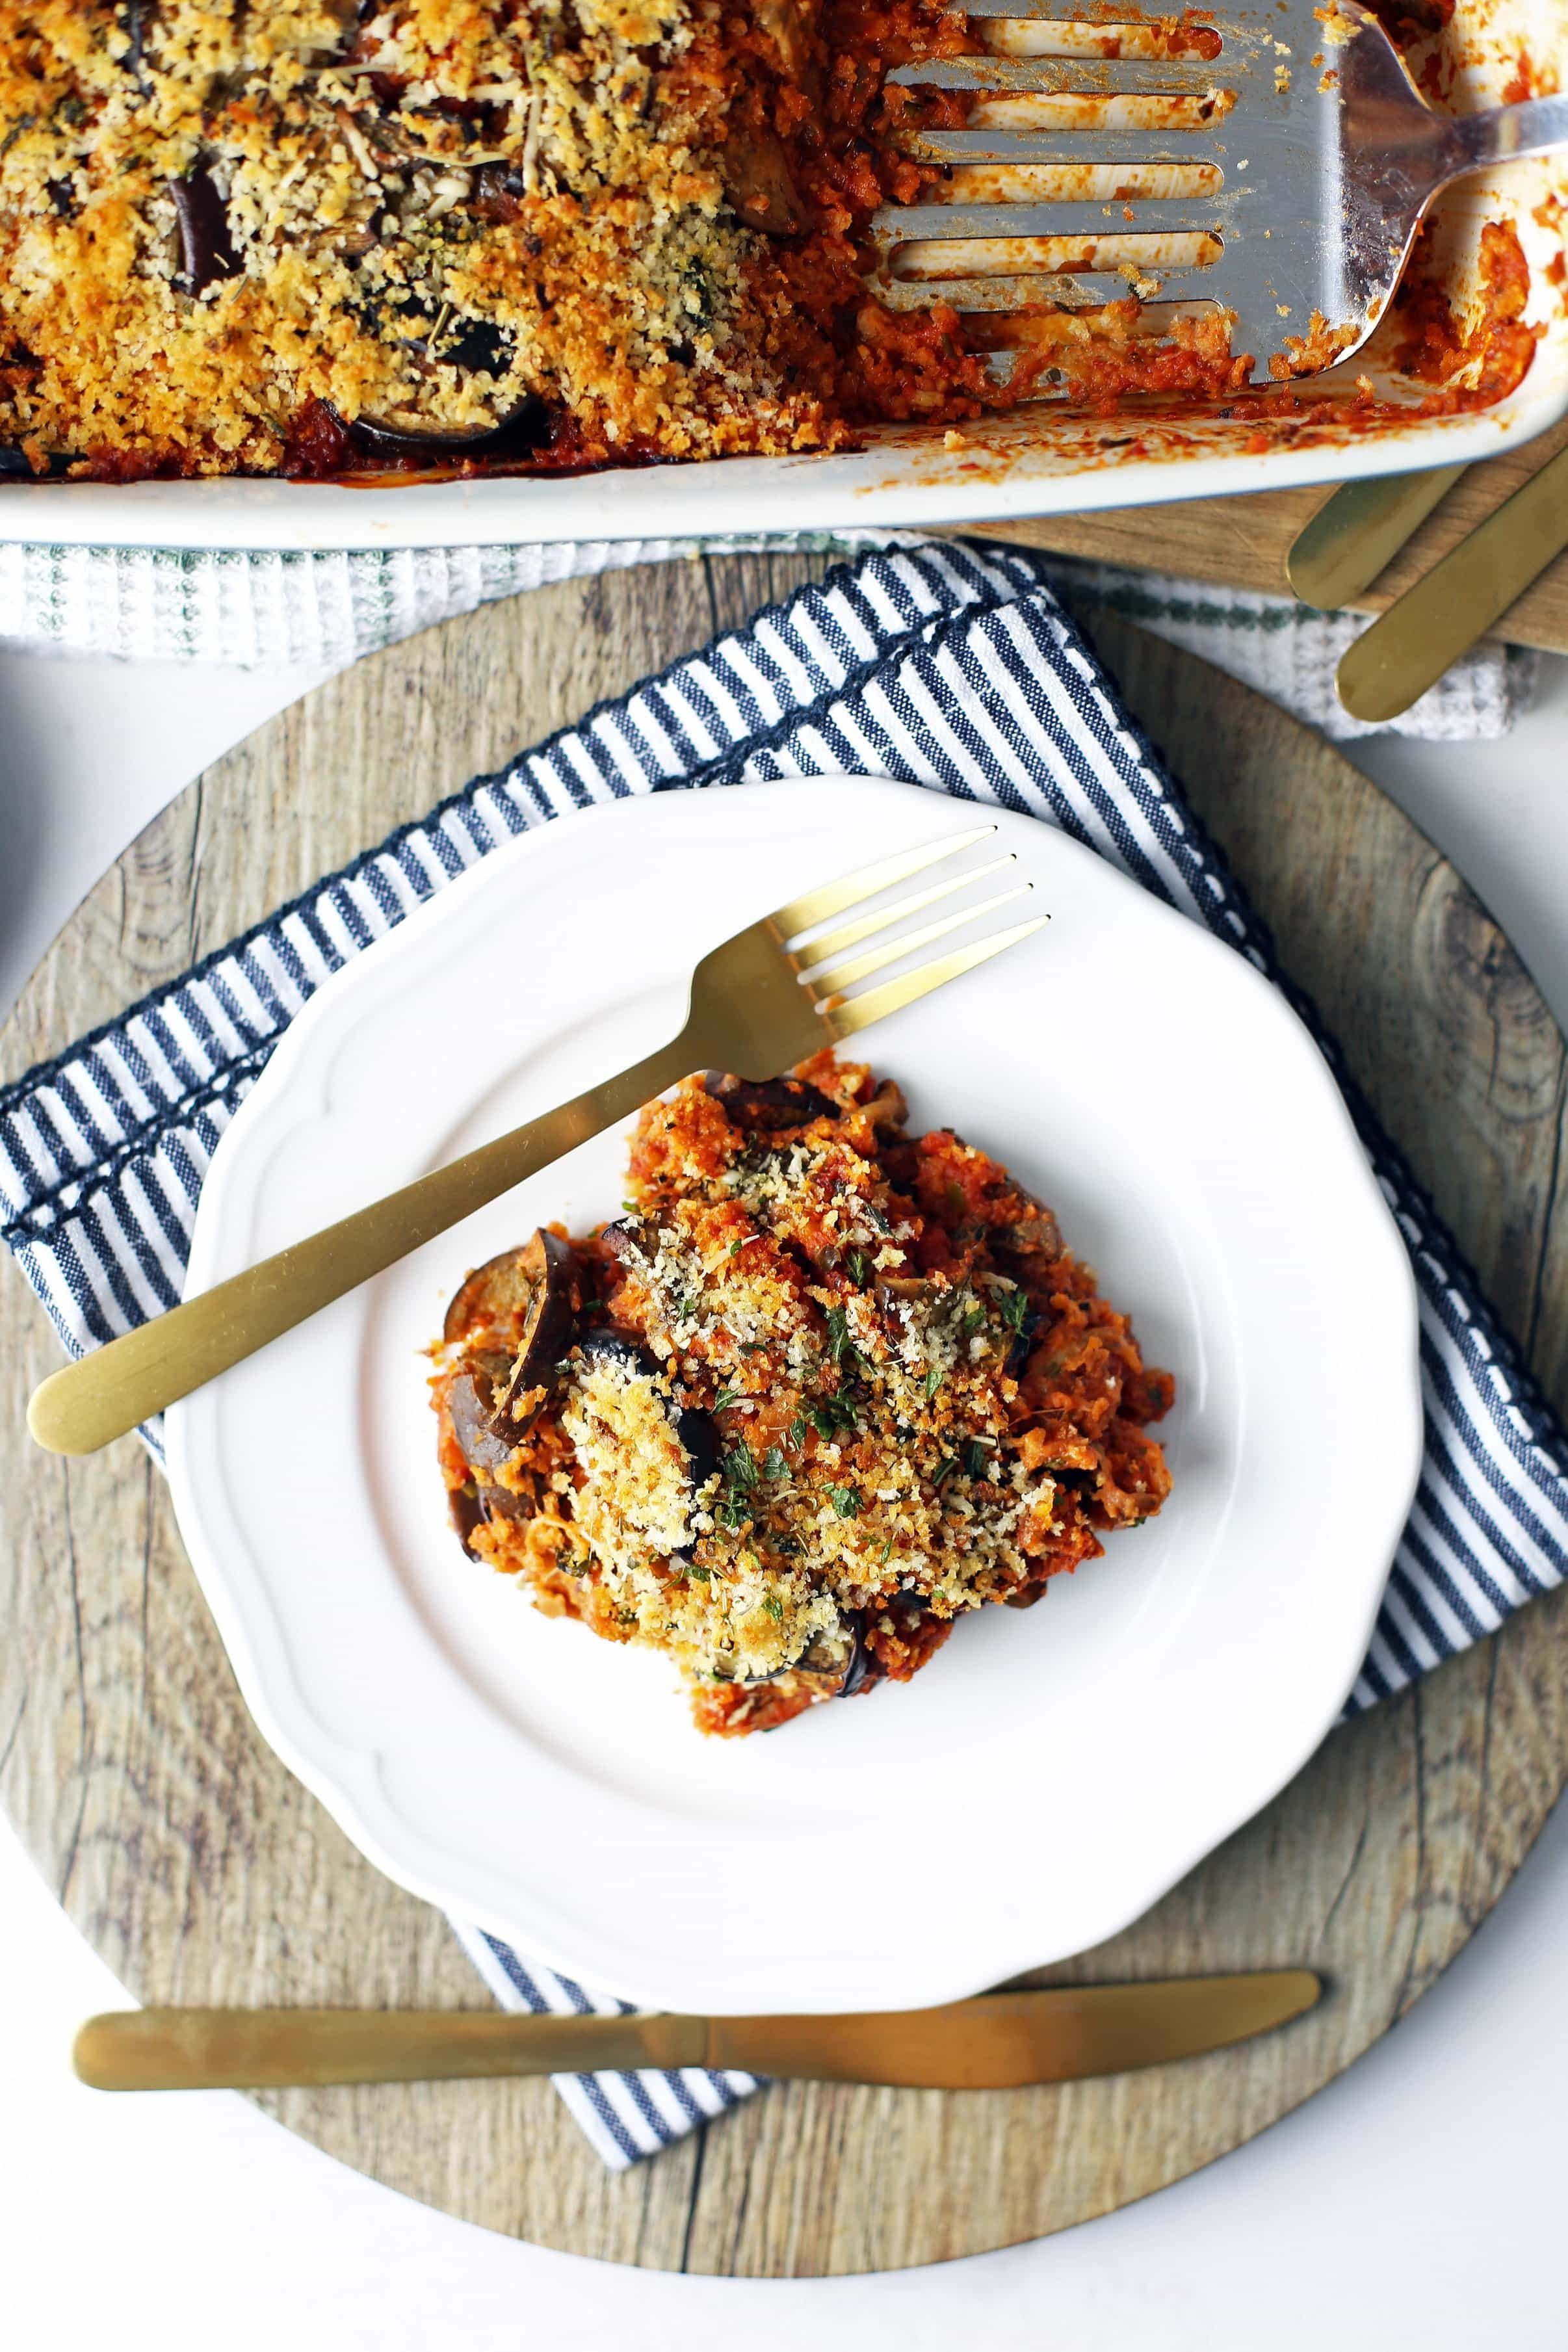 Overhead view of Baked Eggplant Parmesan on a white plate and large rectangular dish.